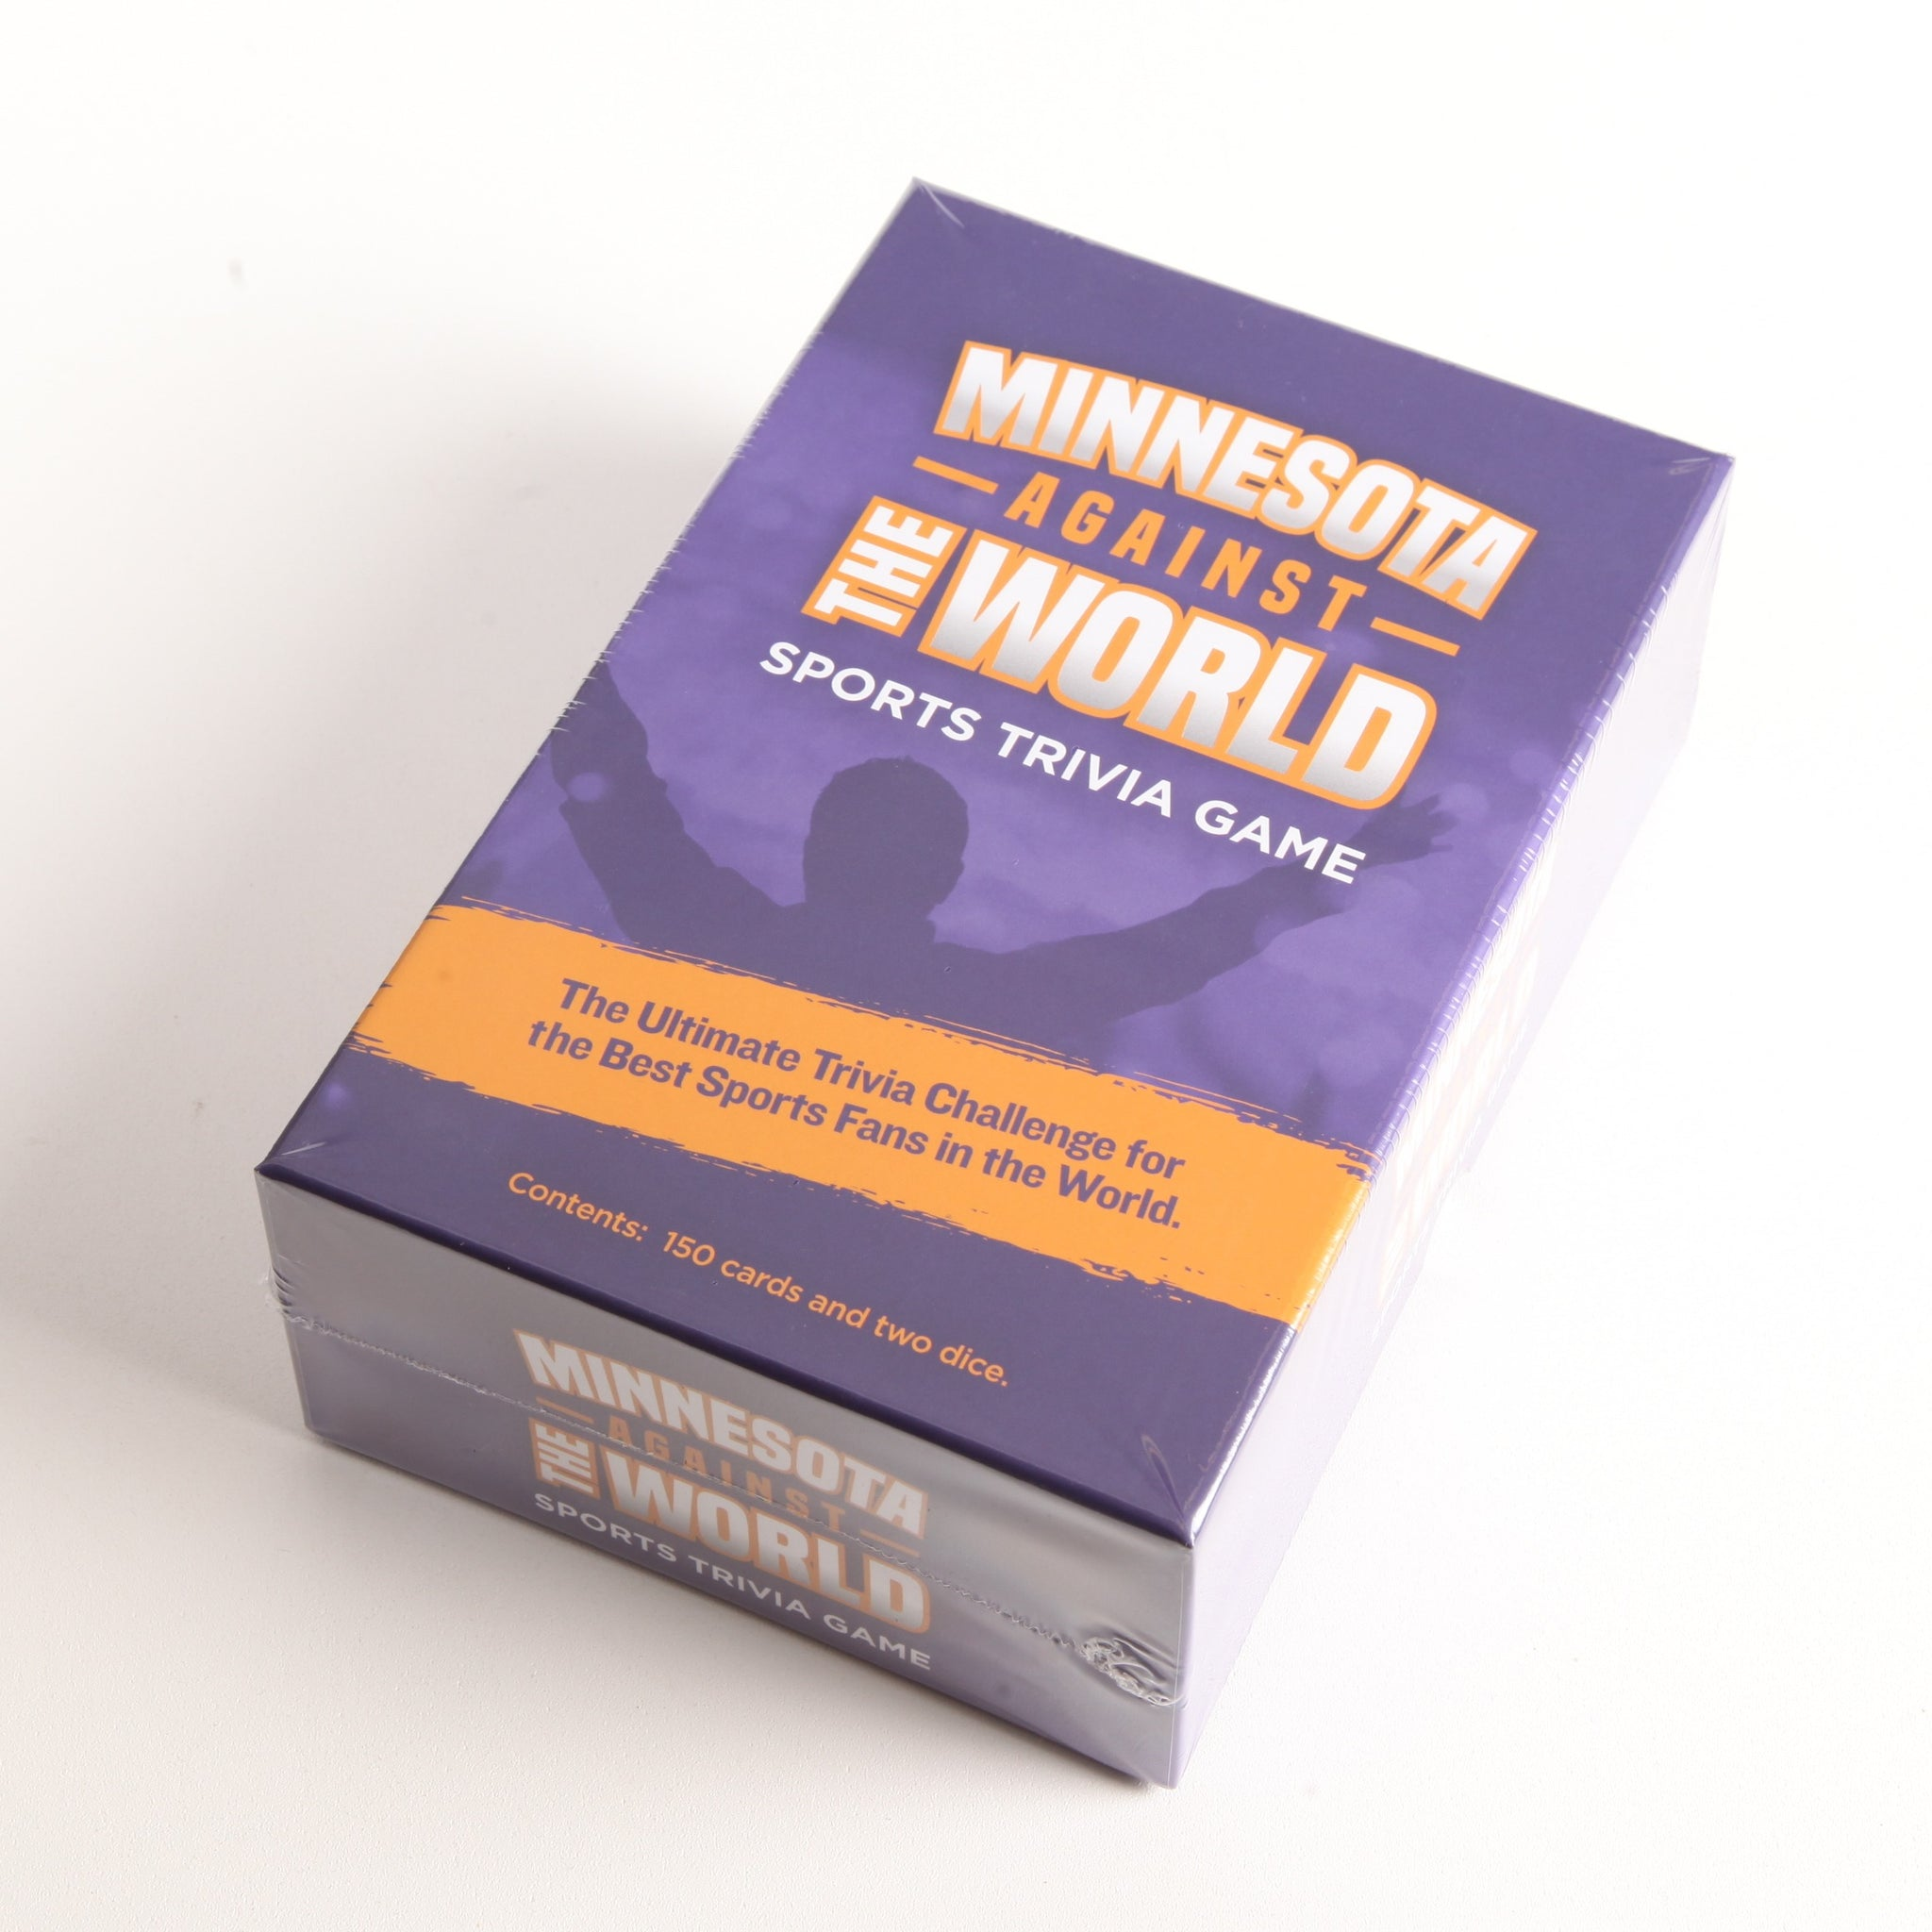 Minnesota Against the World Sports Trivia Game